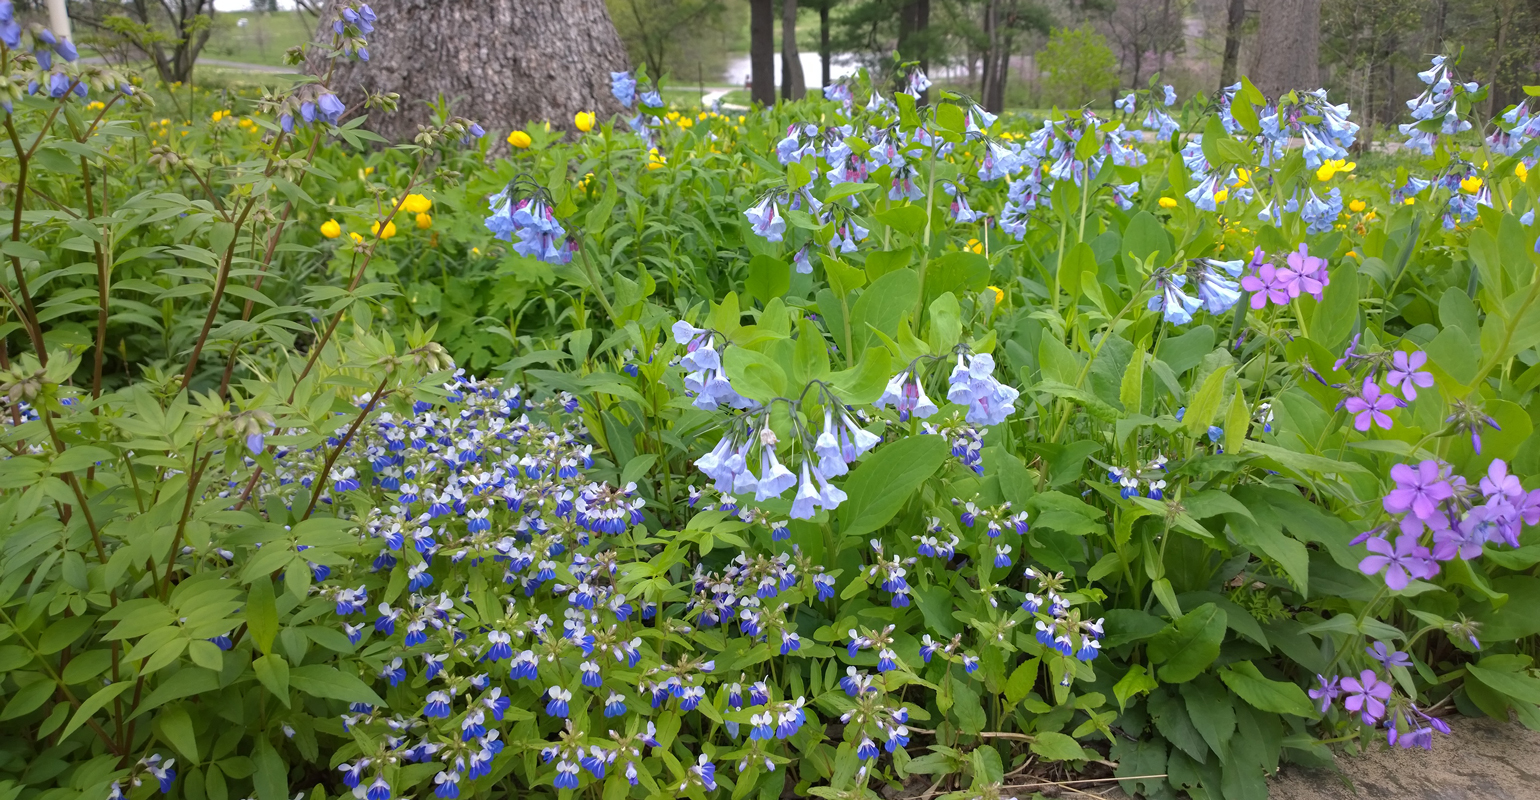 Jacob's ladder, wild sweet William, blue-eyed Mary and Virginia bluebell native plants